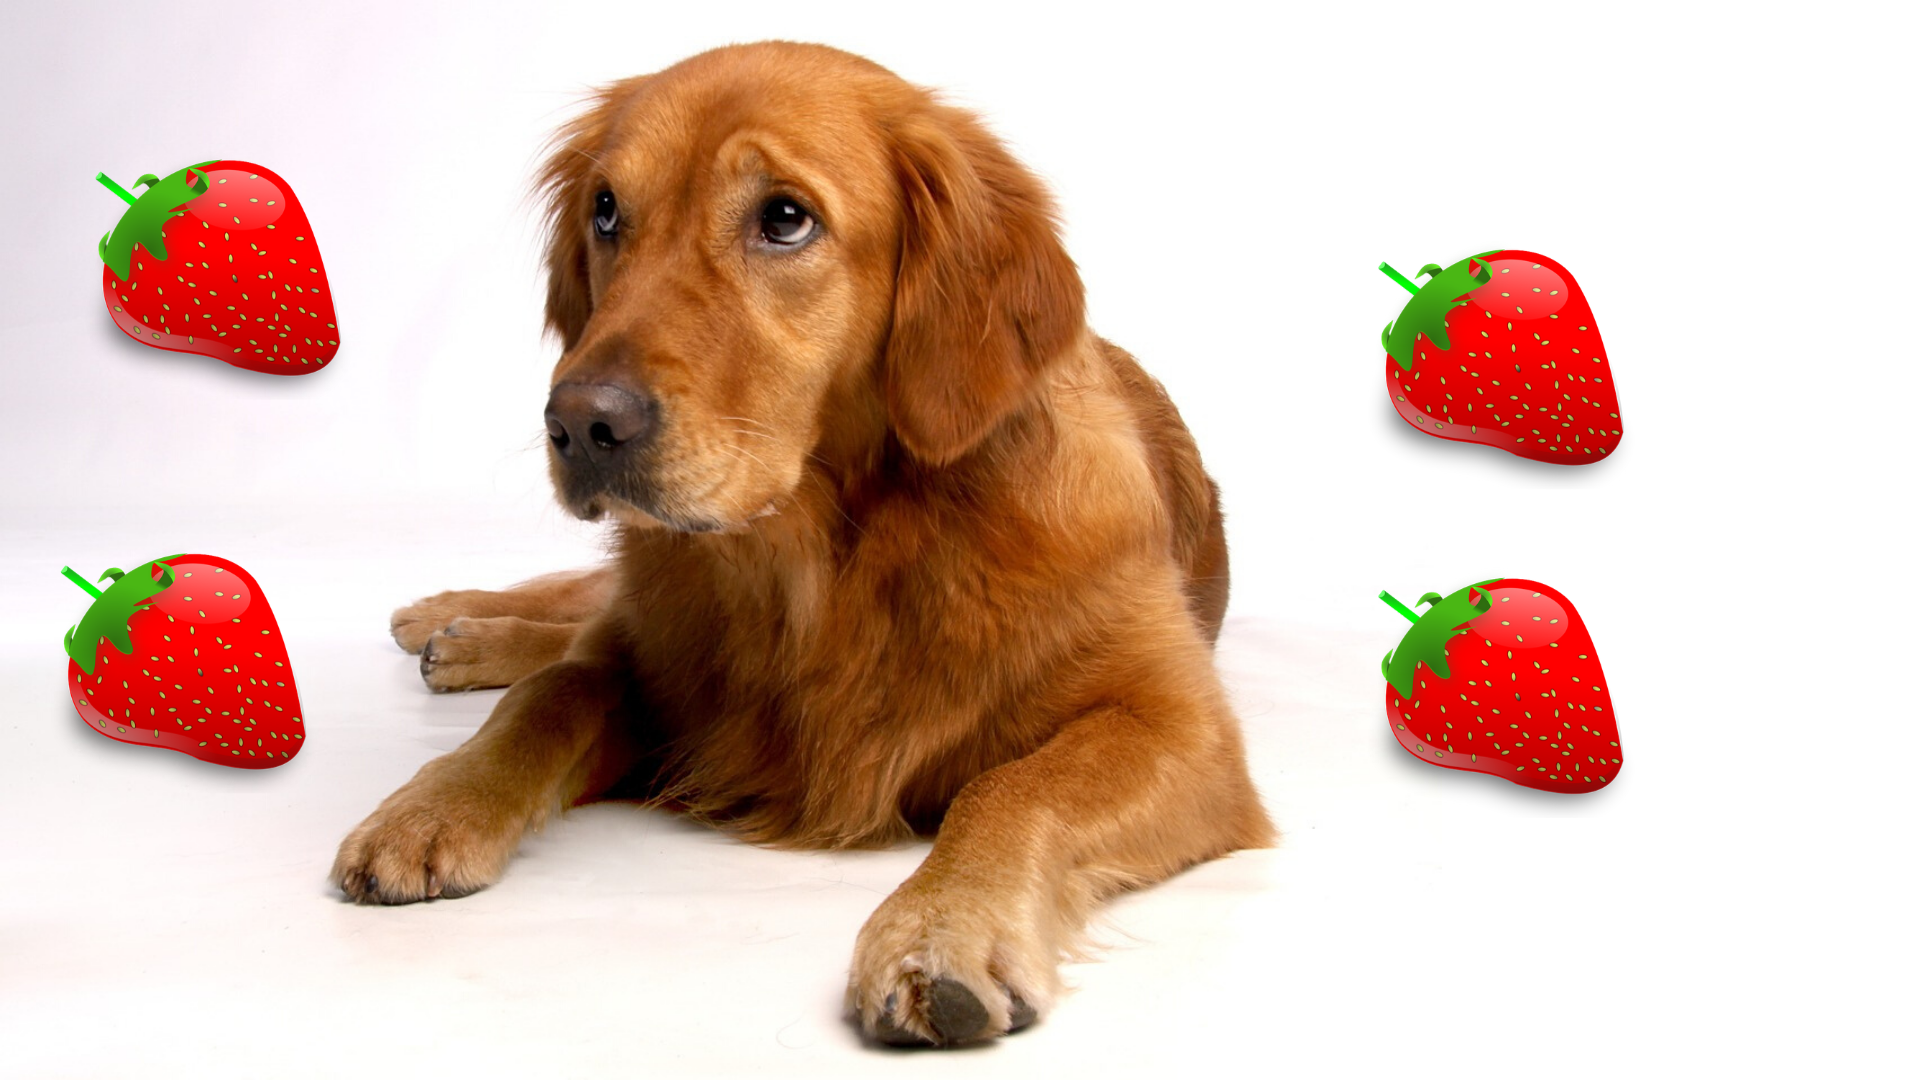 Can Golden Retrievers Eat Strawberries